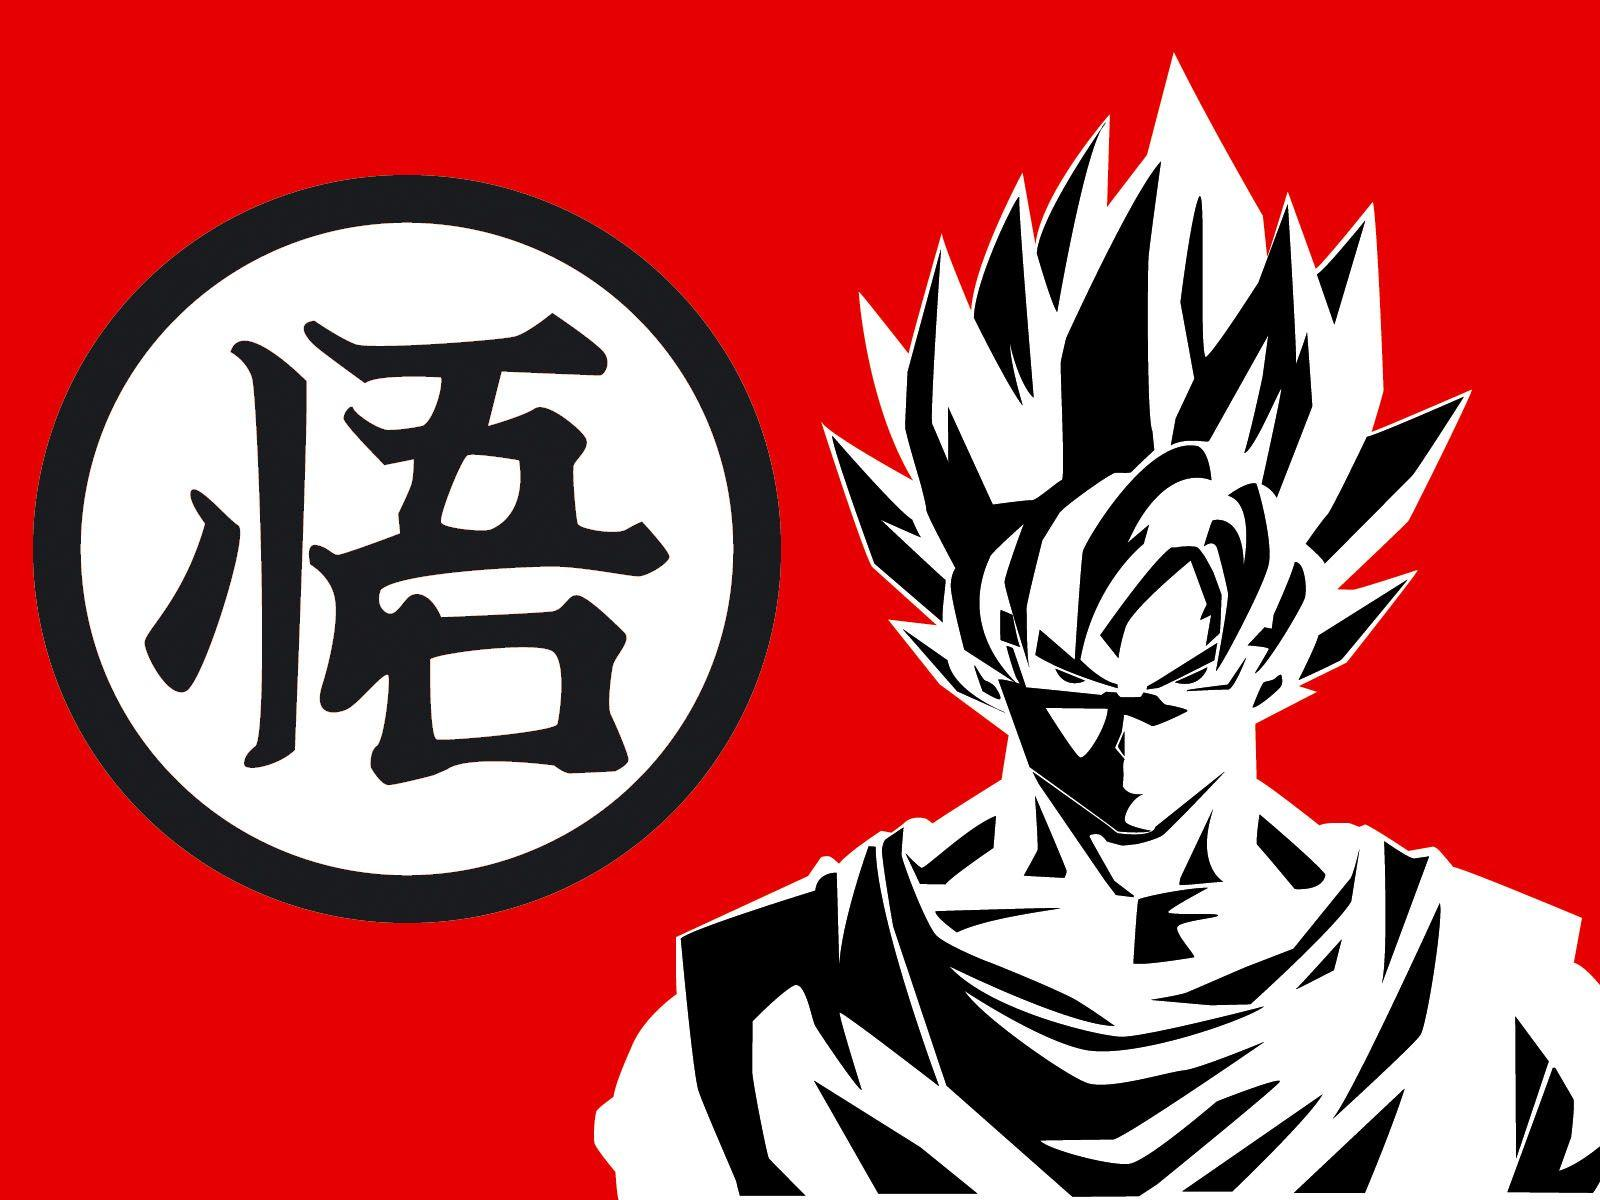 Dragon Ball Son Goku Vector Wallpaper #244 Wallpaper | Best ...